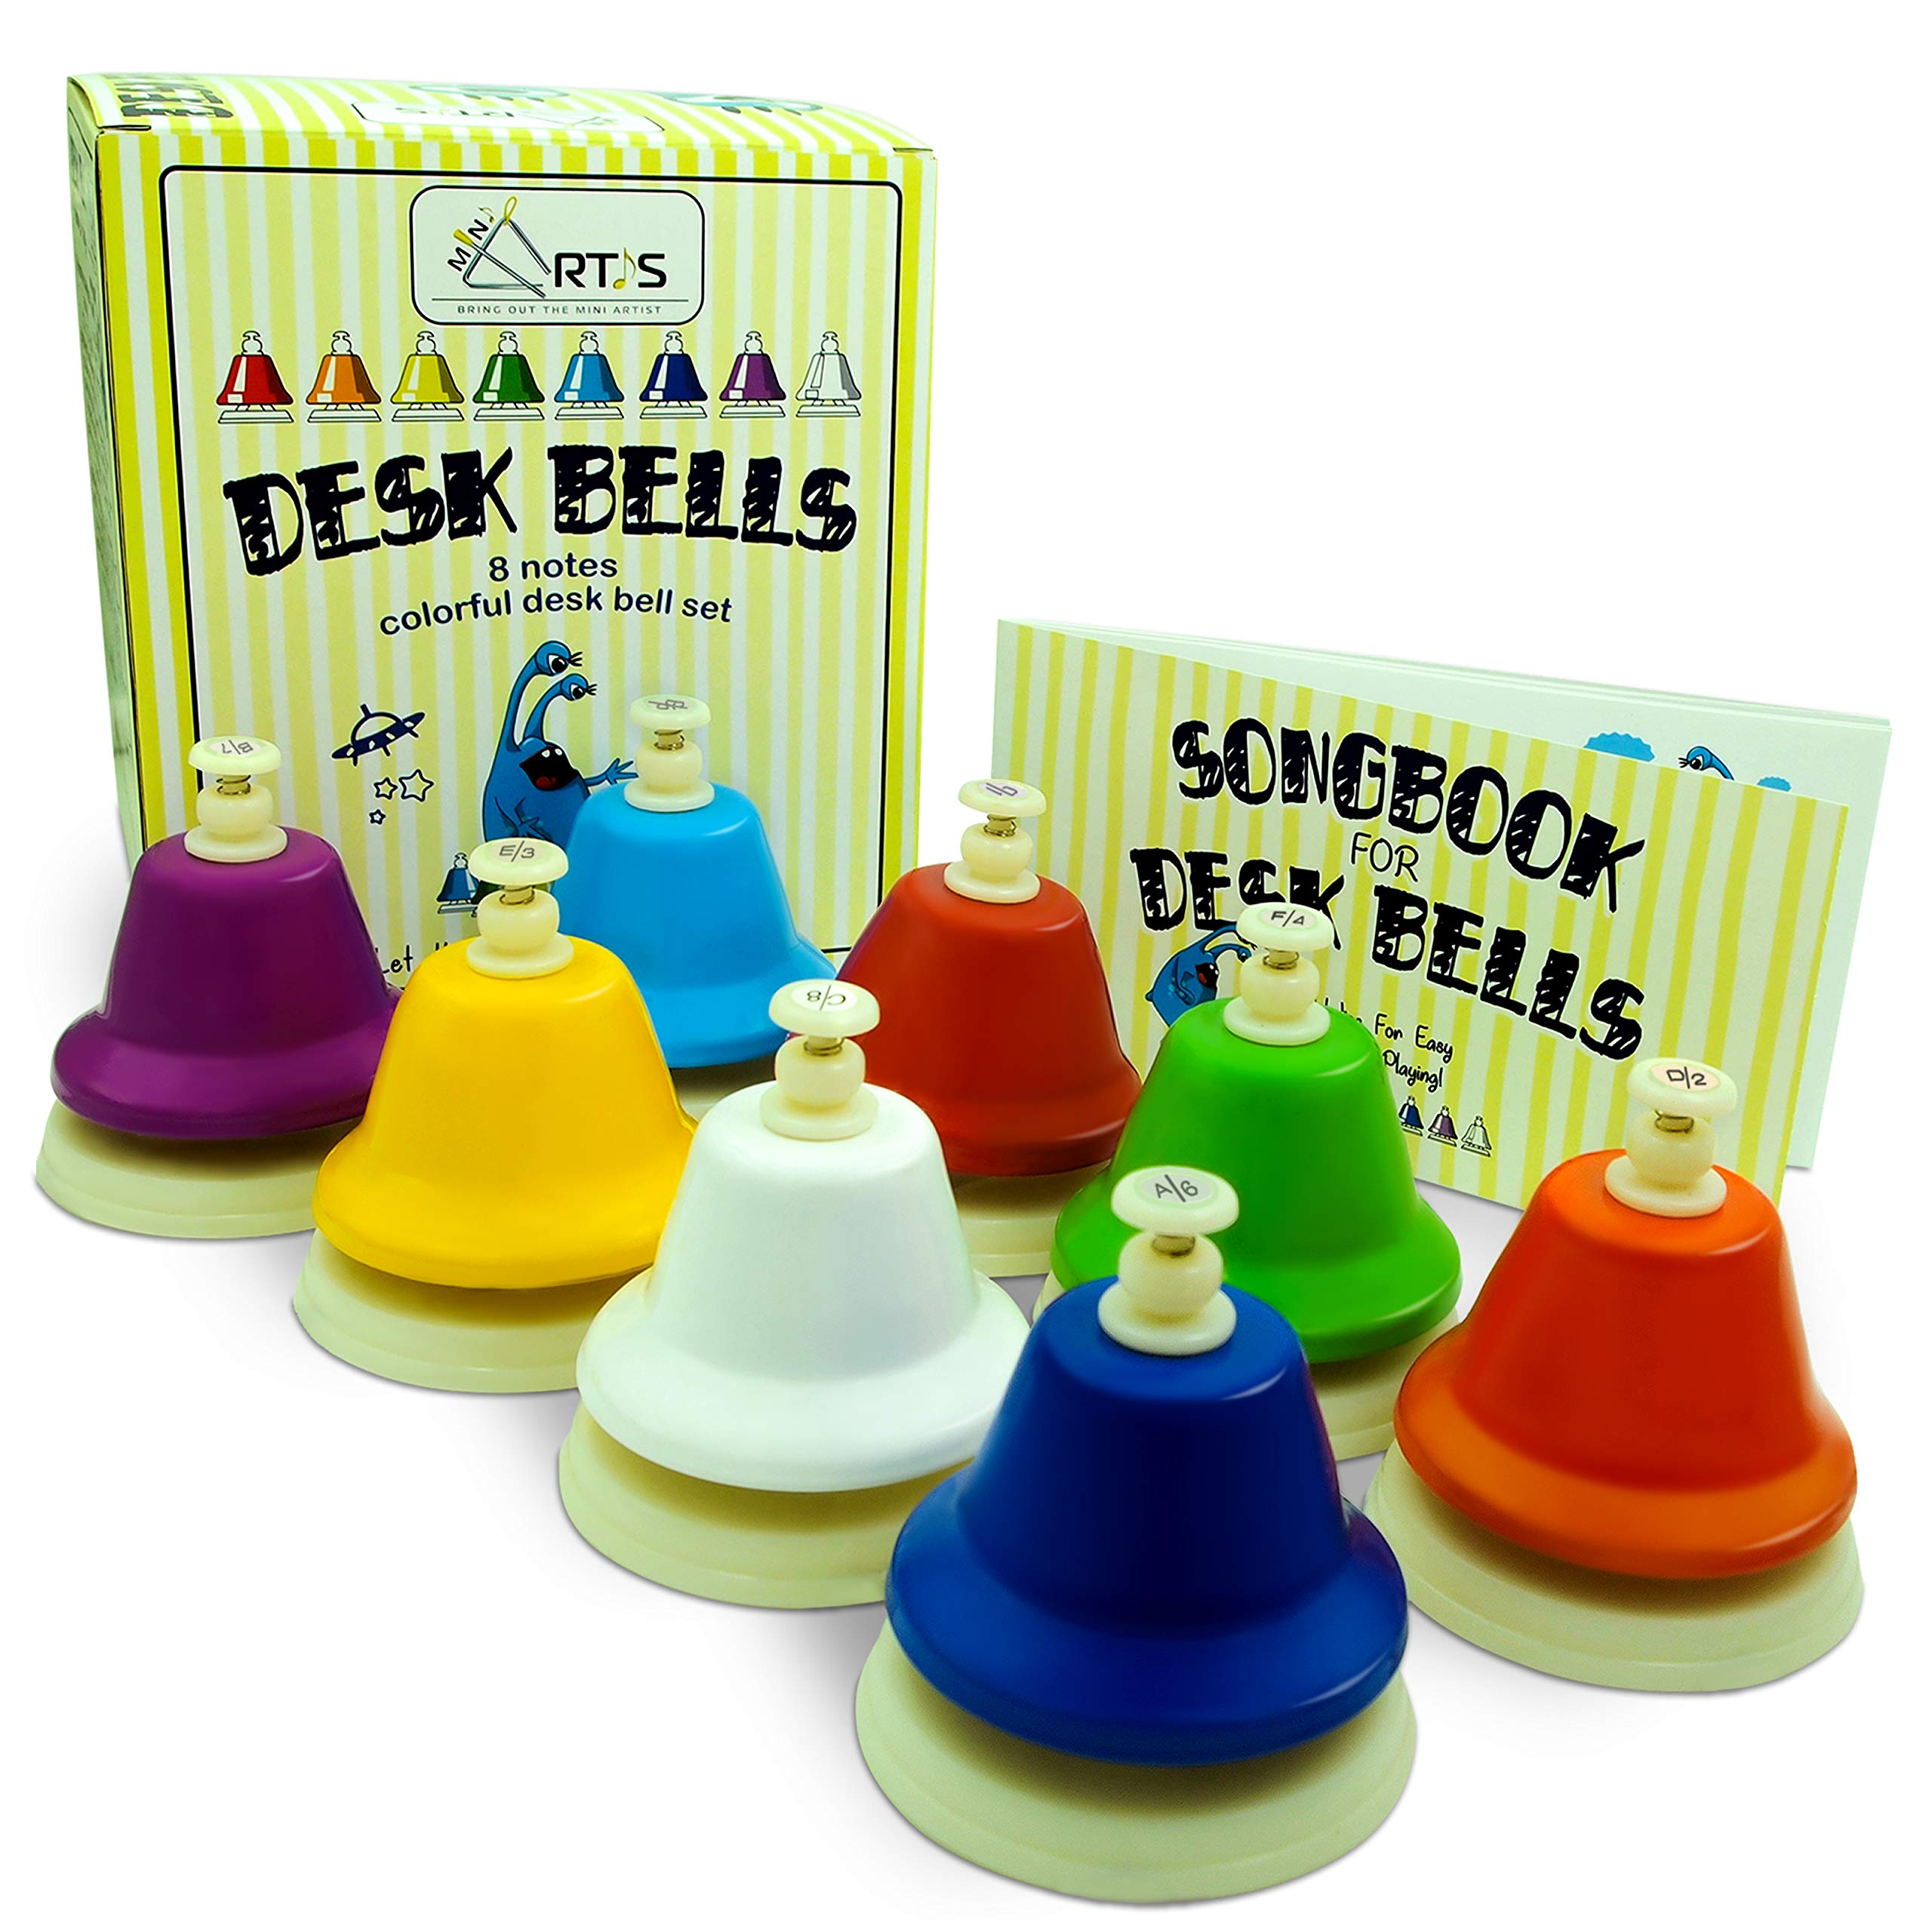 MiniArtis Desk Bells Set for Kids | 8 Notes Diatonic Colorful Metal Hand Bells | Hit on Top Feature | Musical Songbook & Carry Case Included | Great Holiday Birthday Gift for Children